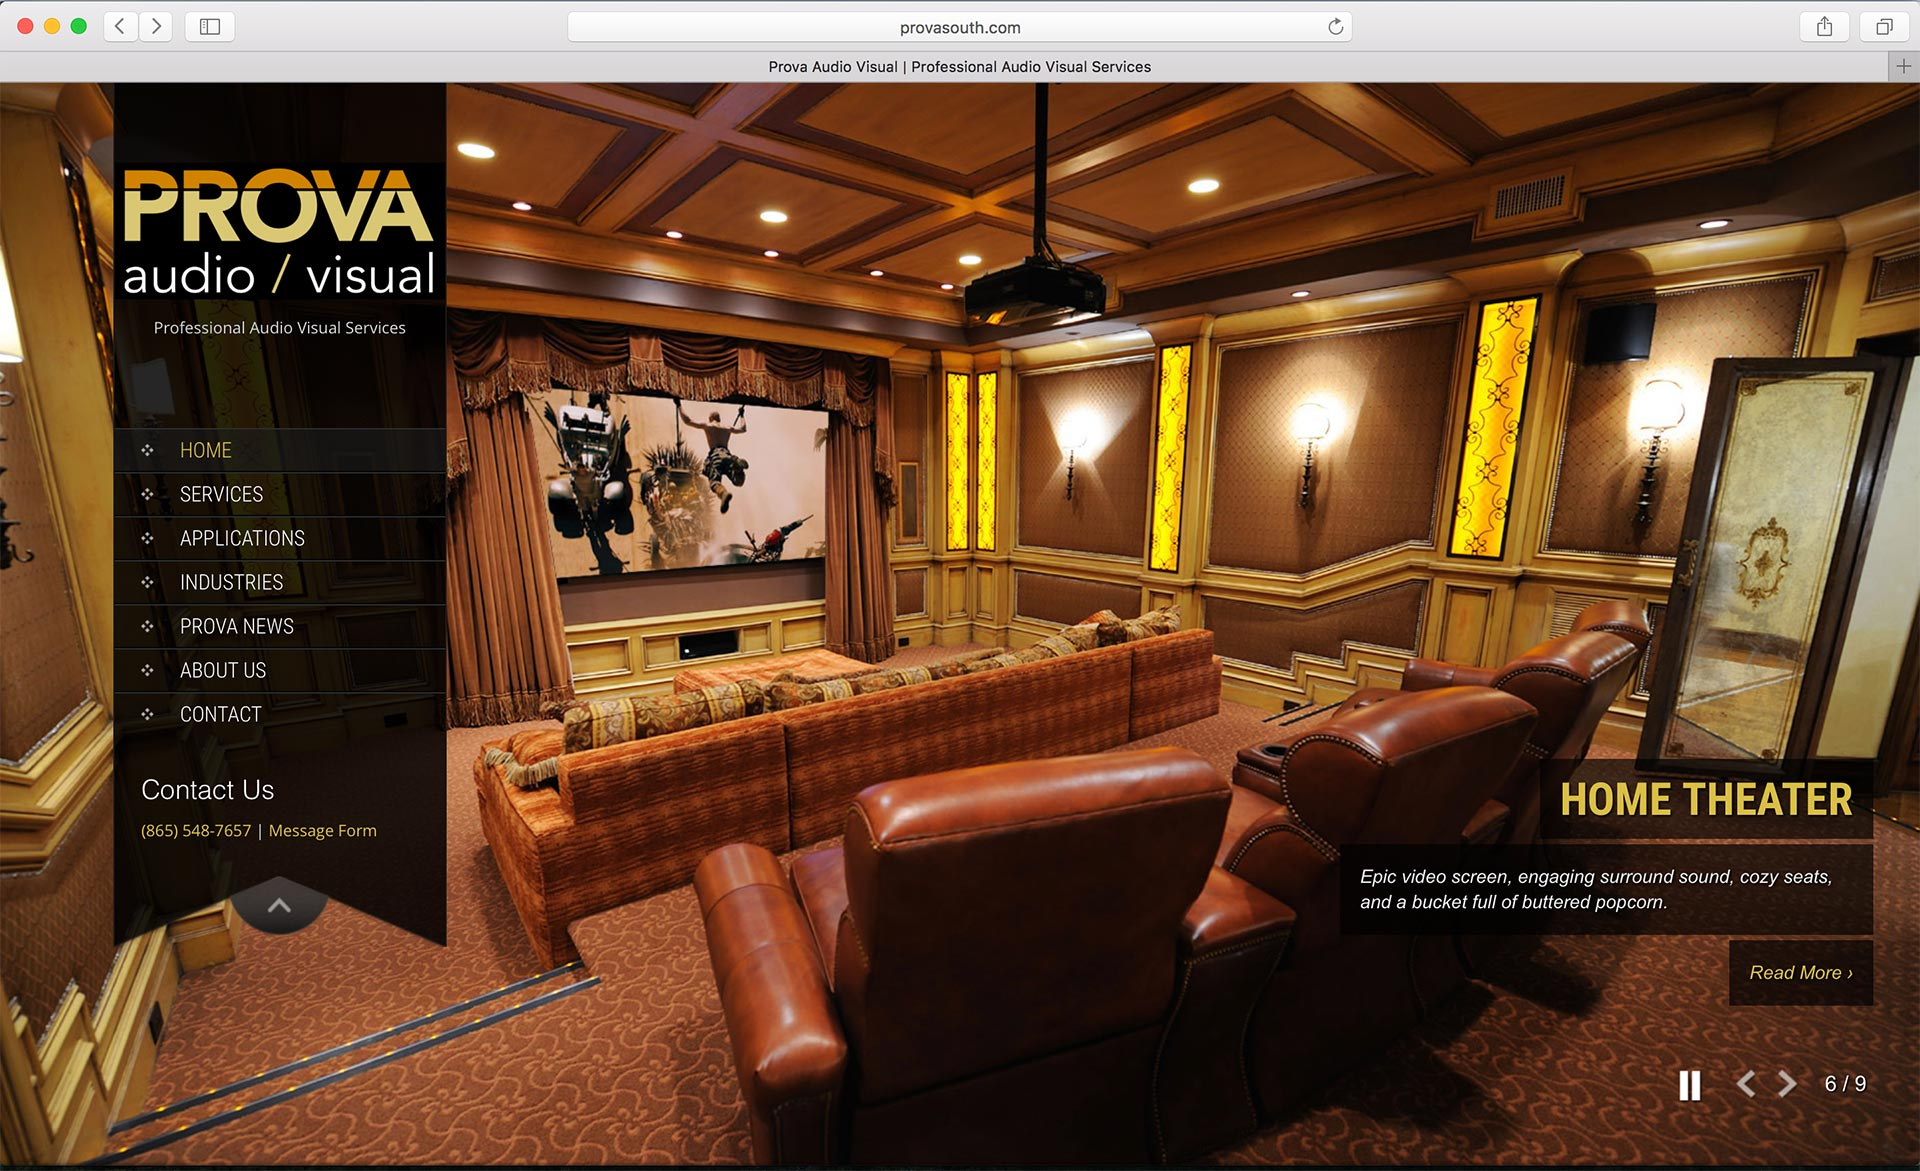 Prova Audio Visual Homepage